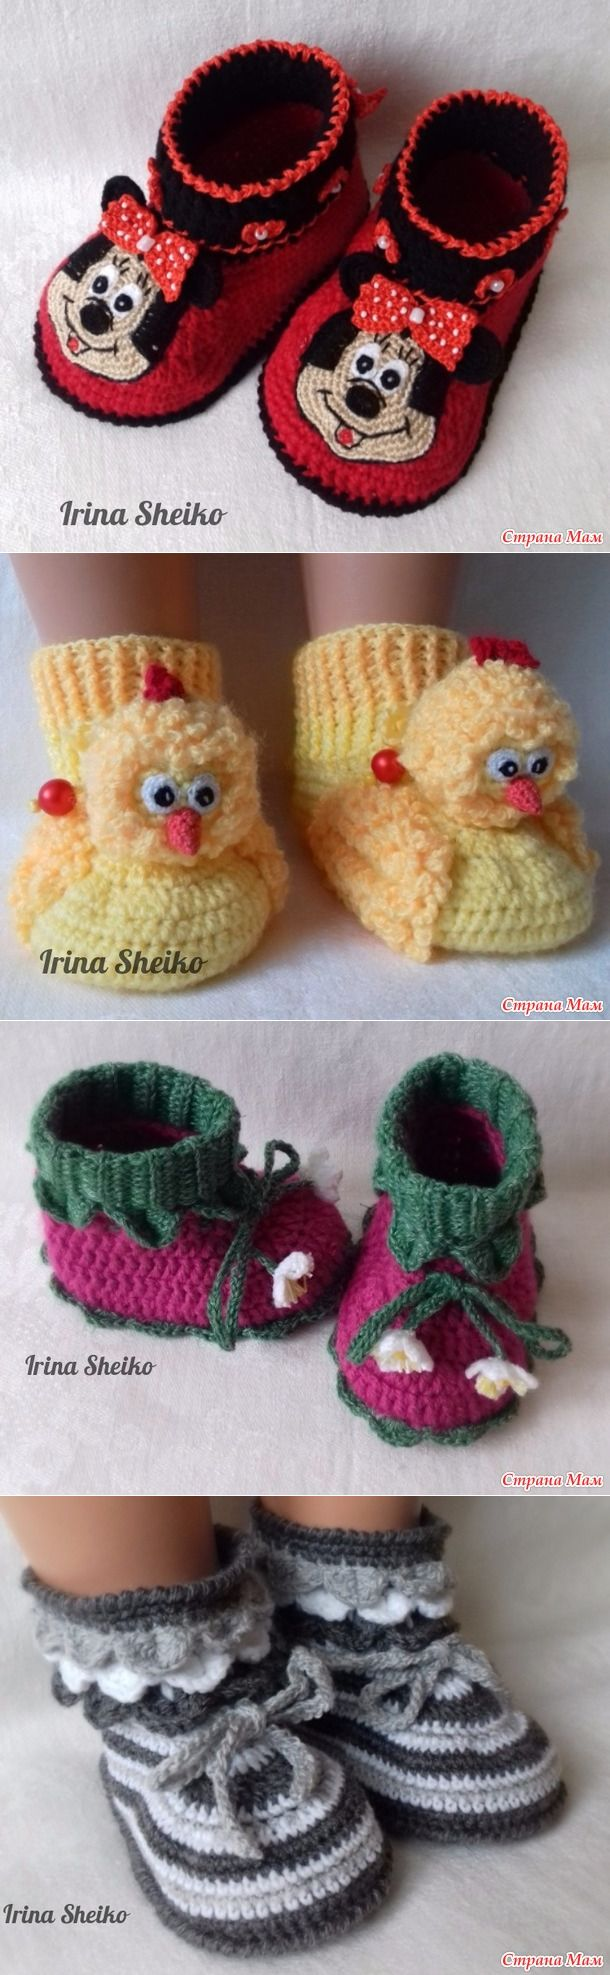 578 best Stricken und Häkeln images on Pinterest | Knits, Amigurumi ...